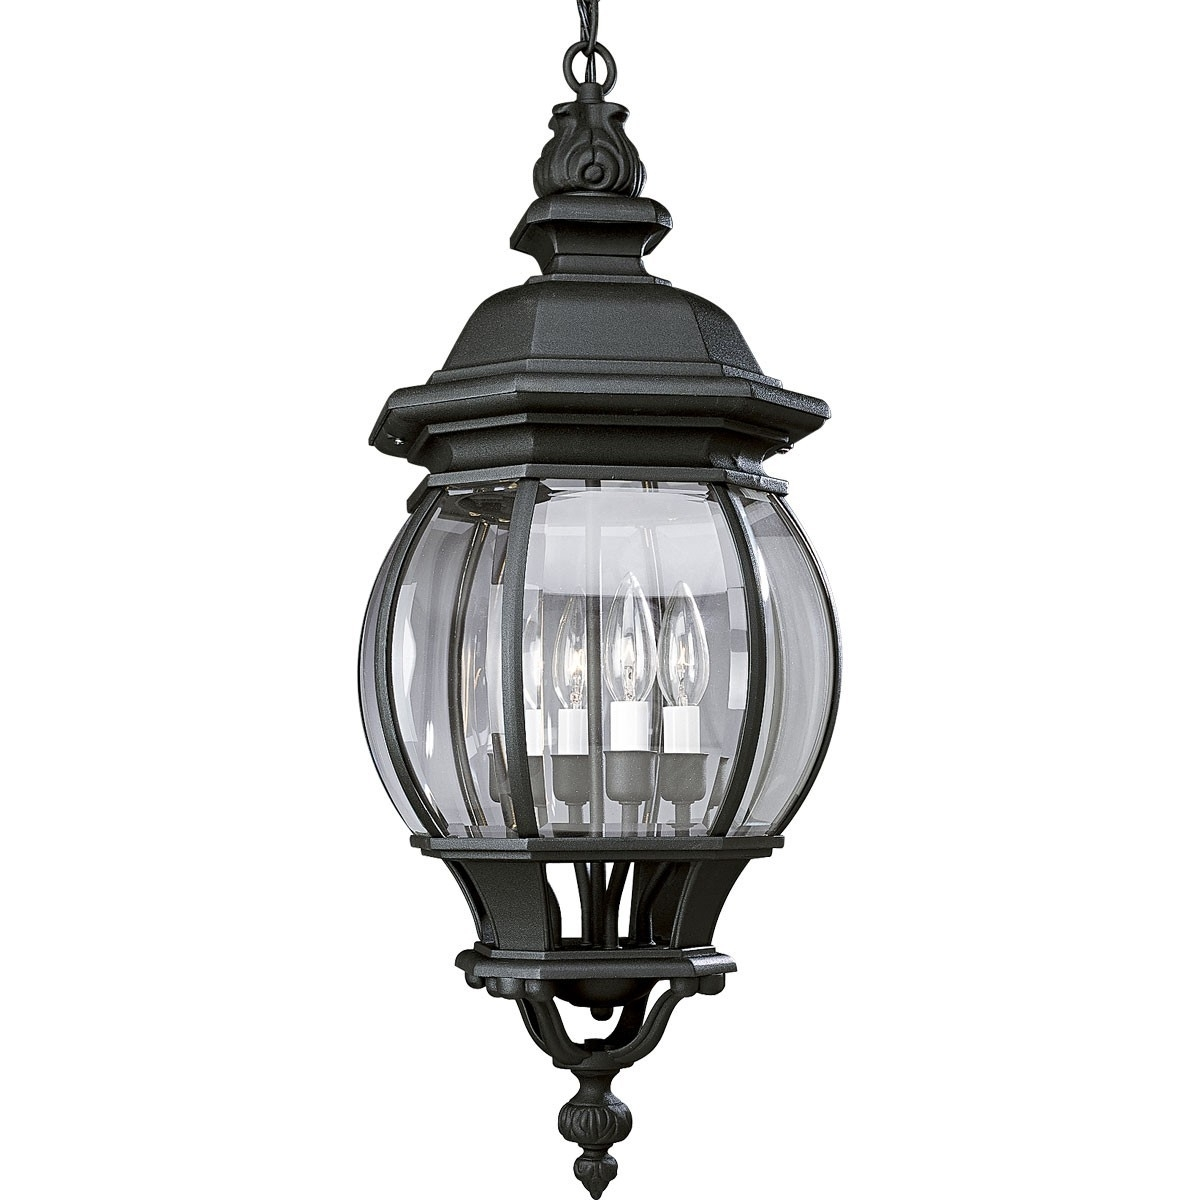 Newest White Outdoor Hanging Lanterns Regarding Onion Design Four Light Hanging Lantern With Clear Beveled Glass (View 14 of 20)